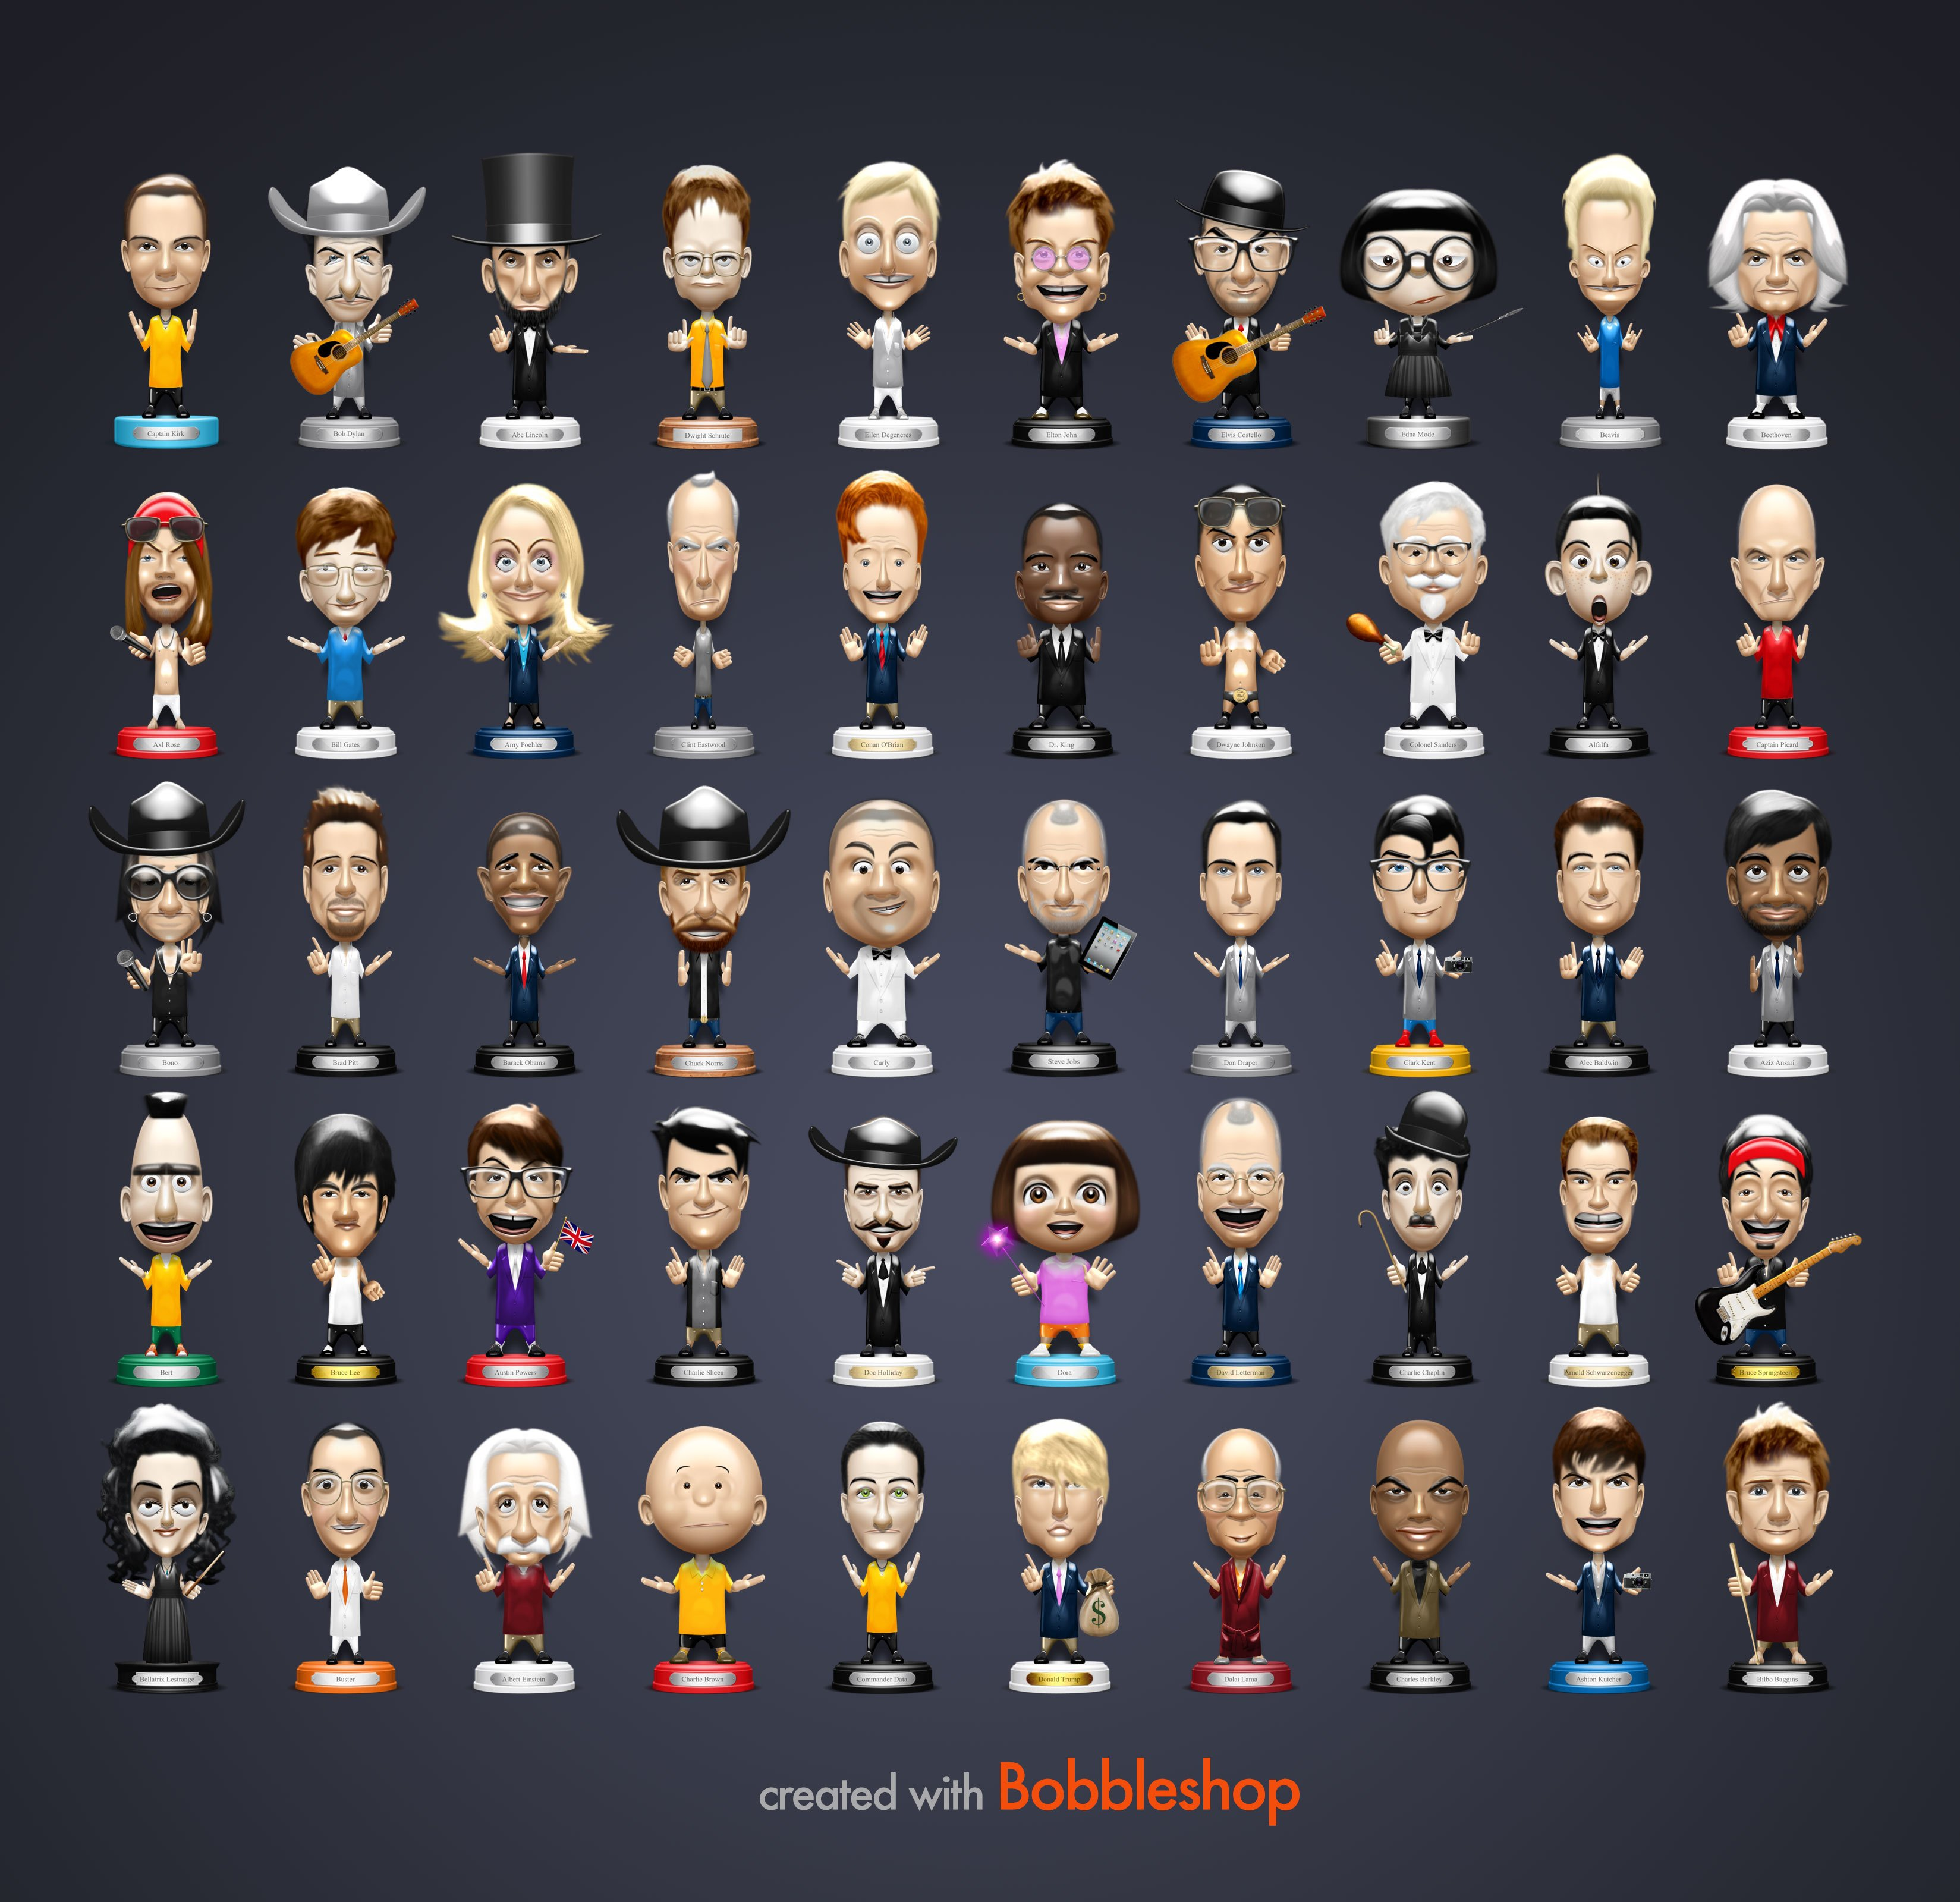 Poster of celebrity bobble heads